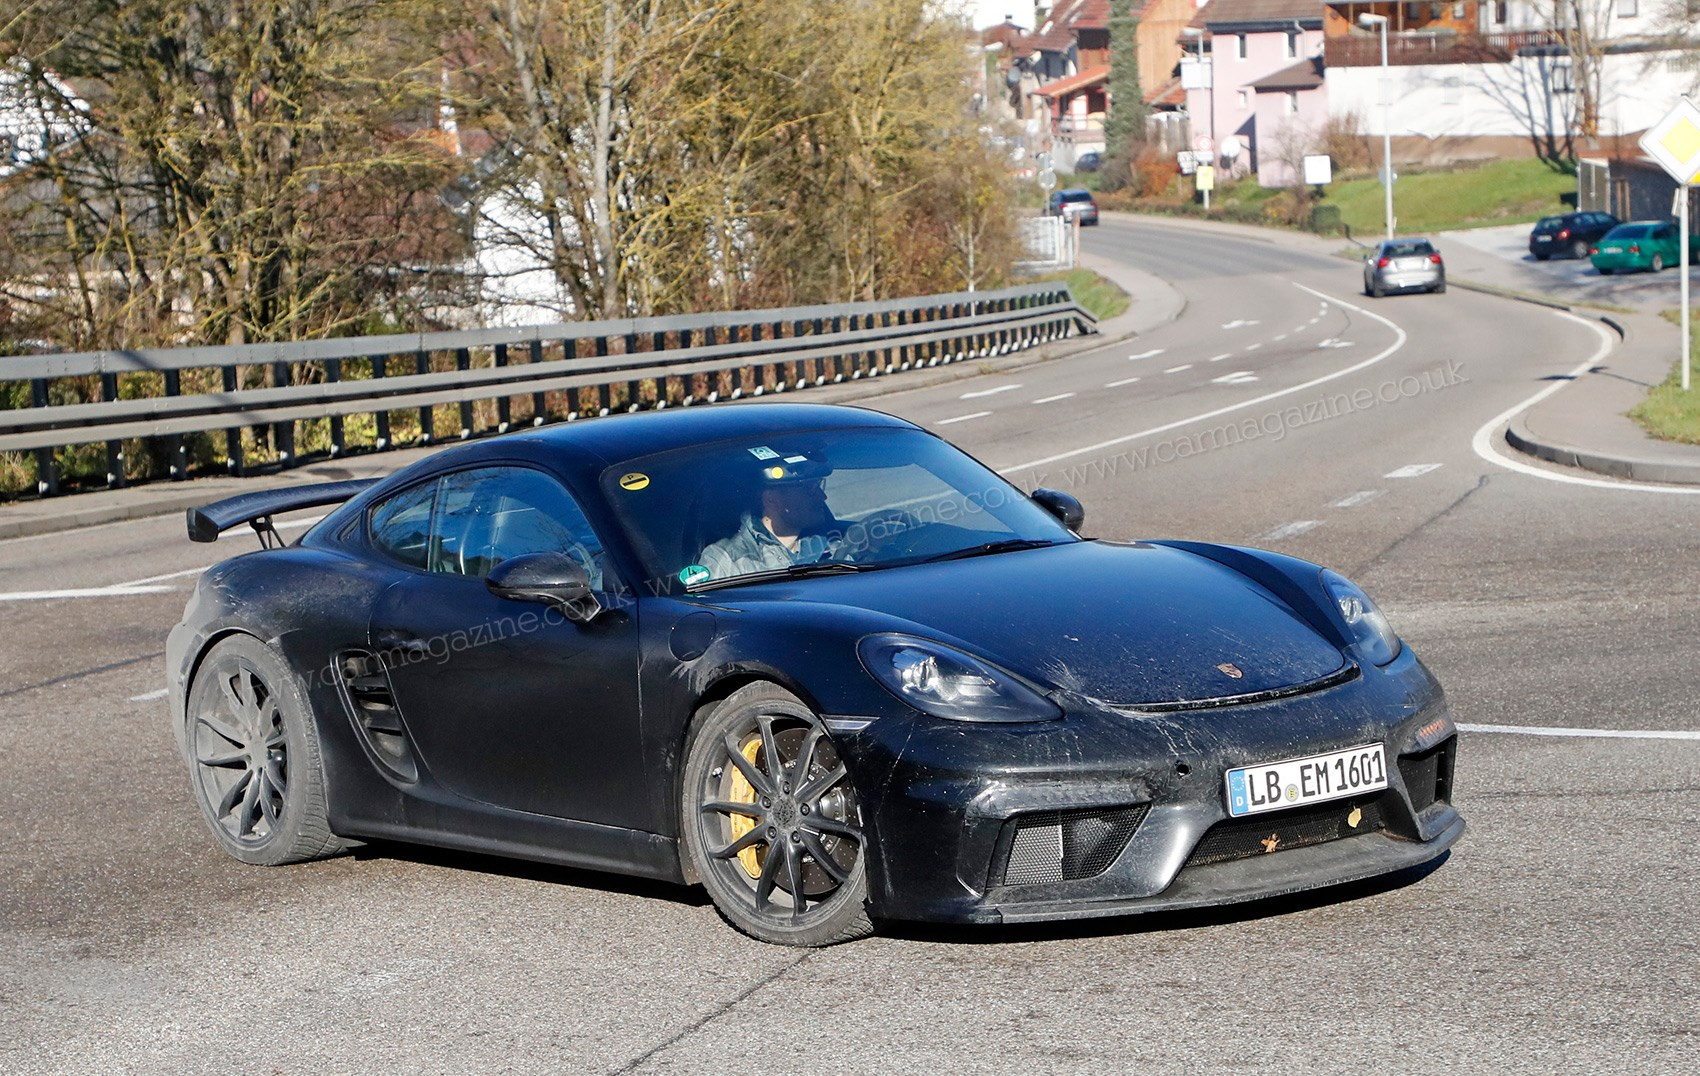 New Porsche Cayman GT4: fresh pictures of testing mule ...